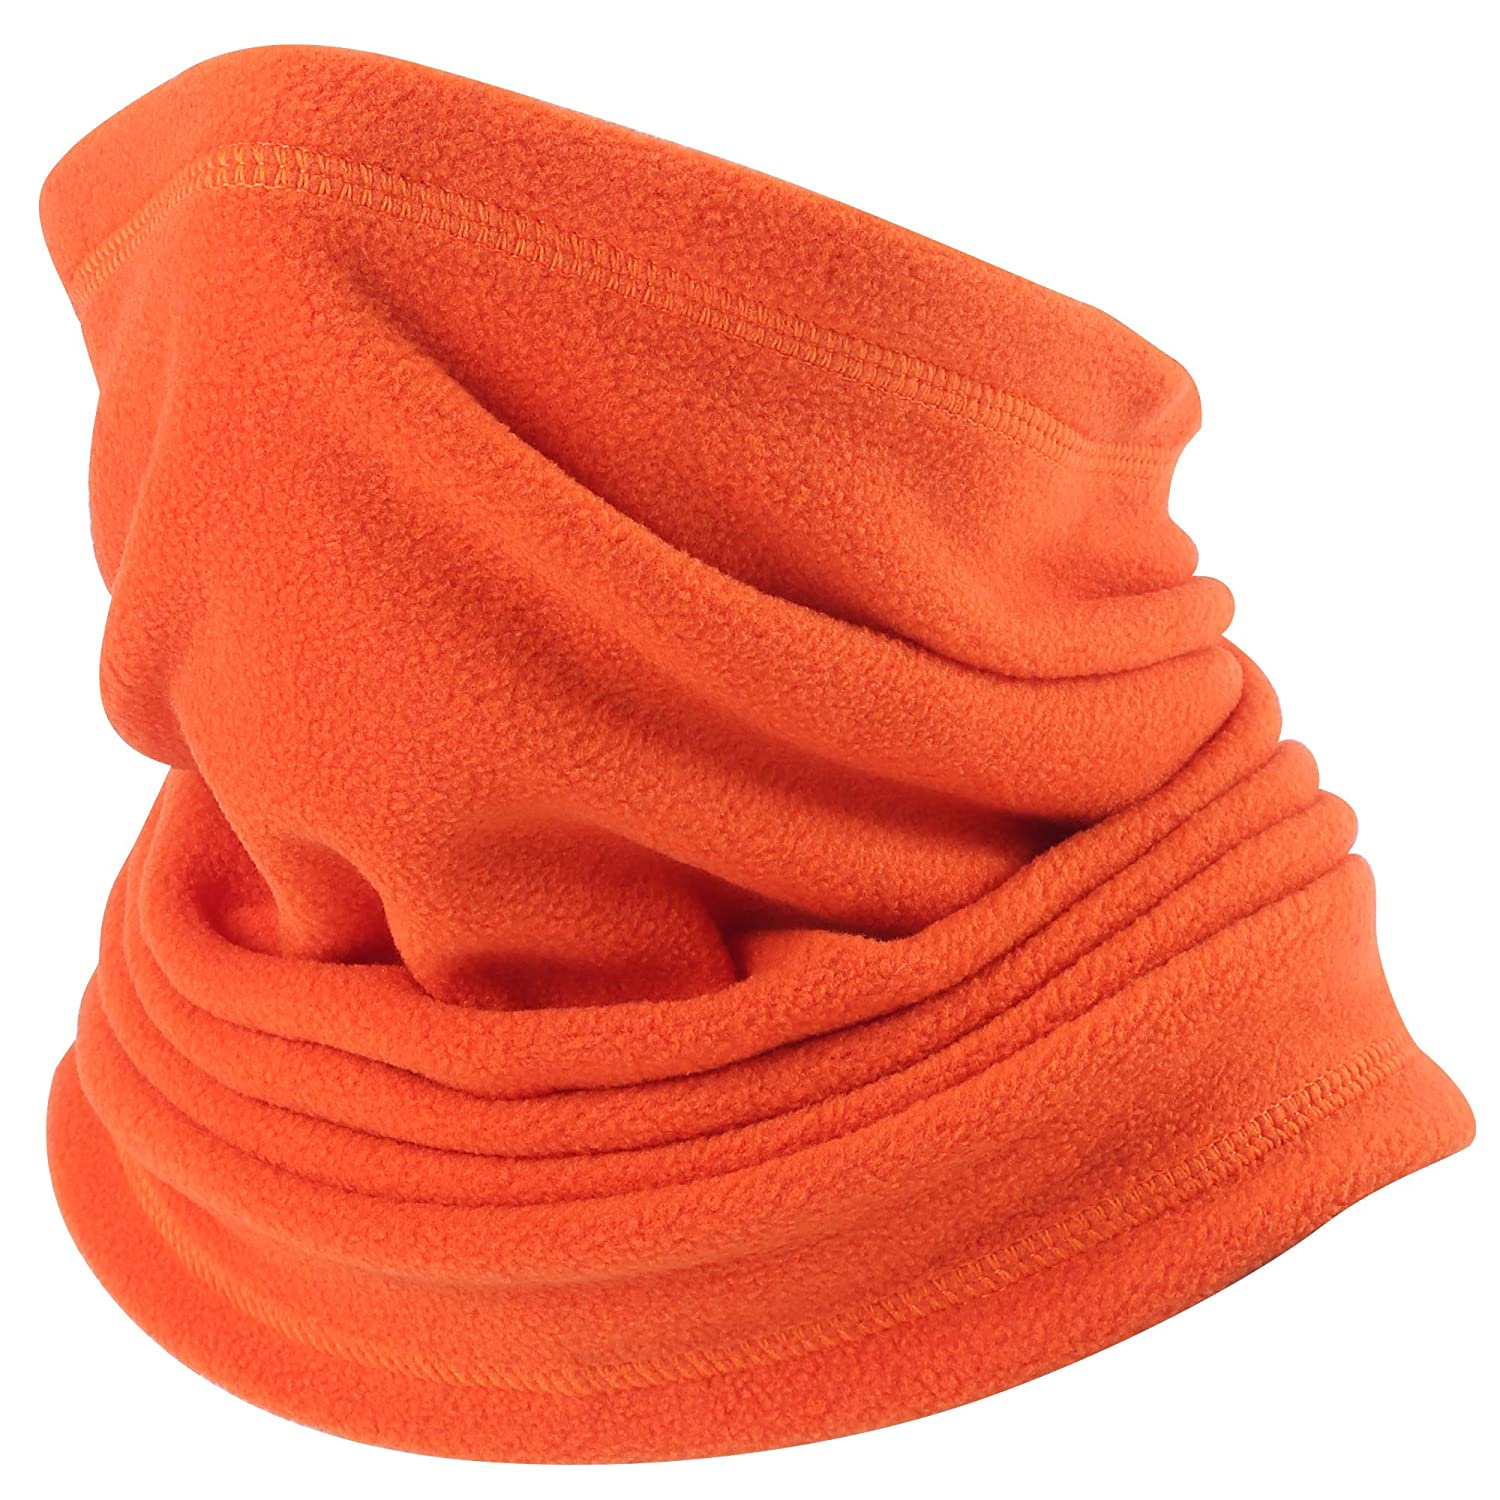 AXBXCX 2 Pack or 1 Pack Neck Warmer Gaiter for Cold Weather .